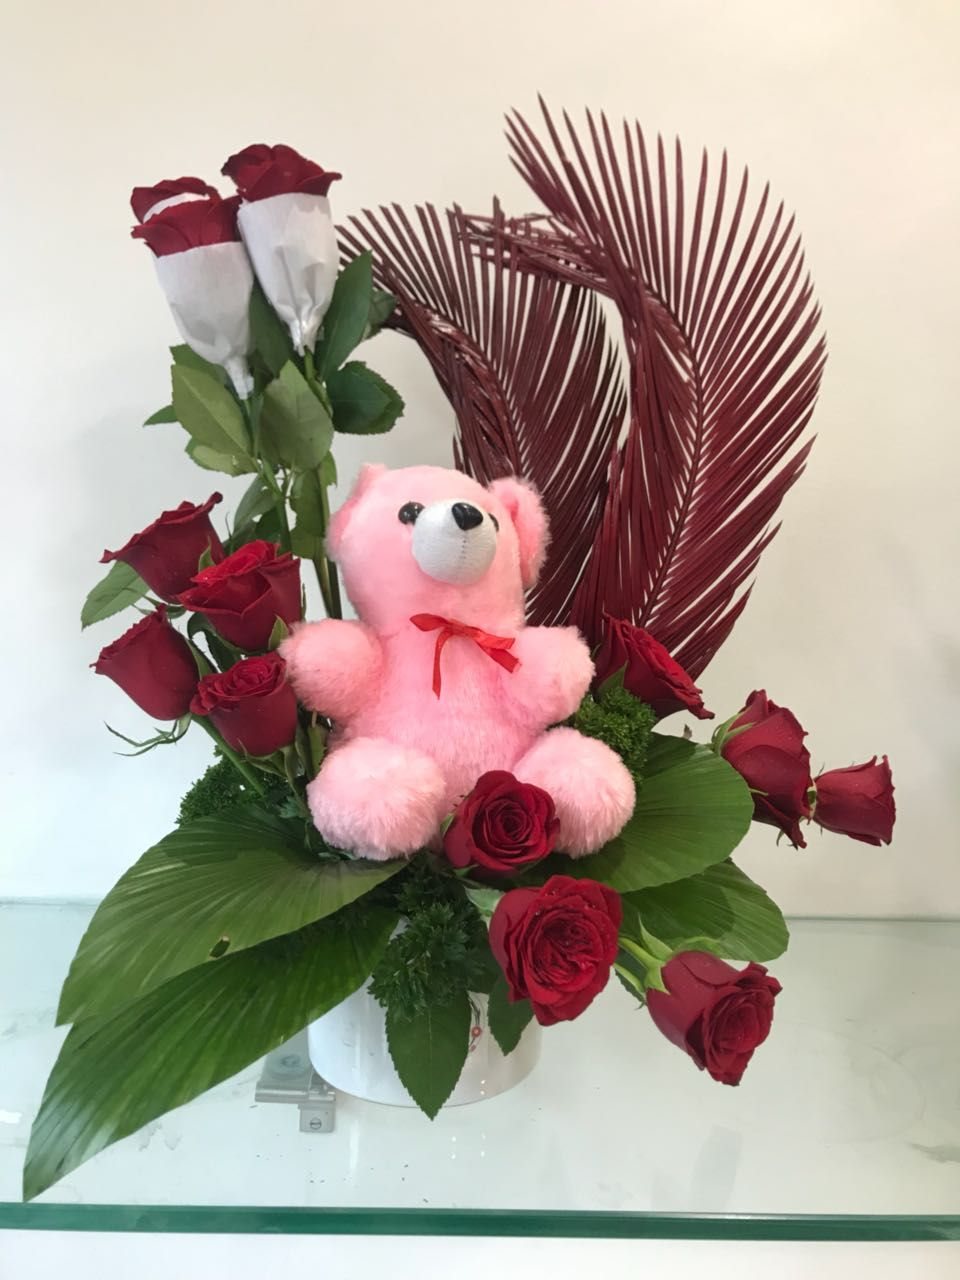 Send flowers to pune online flowers bouquet cakes chocolates send flowers to pune buy flower online flowers delivery in pune izmirmasajfo